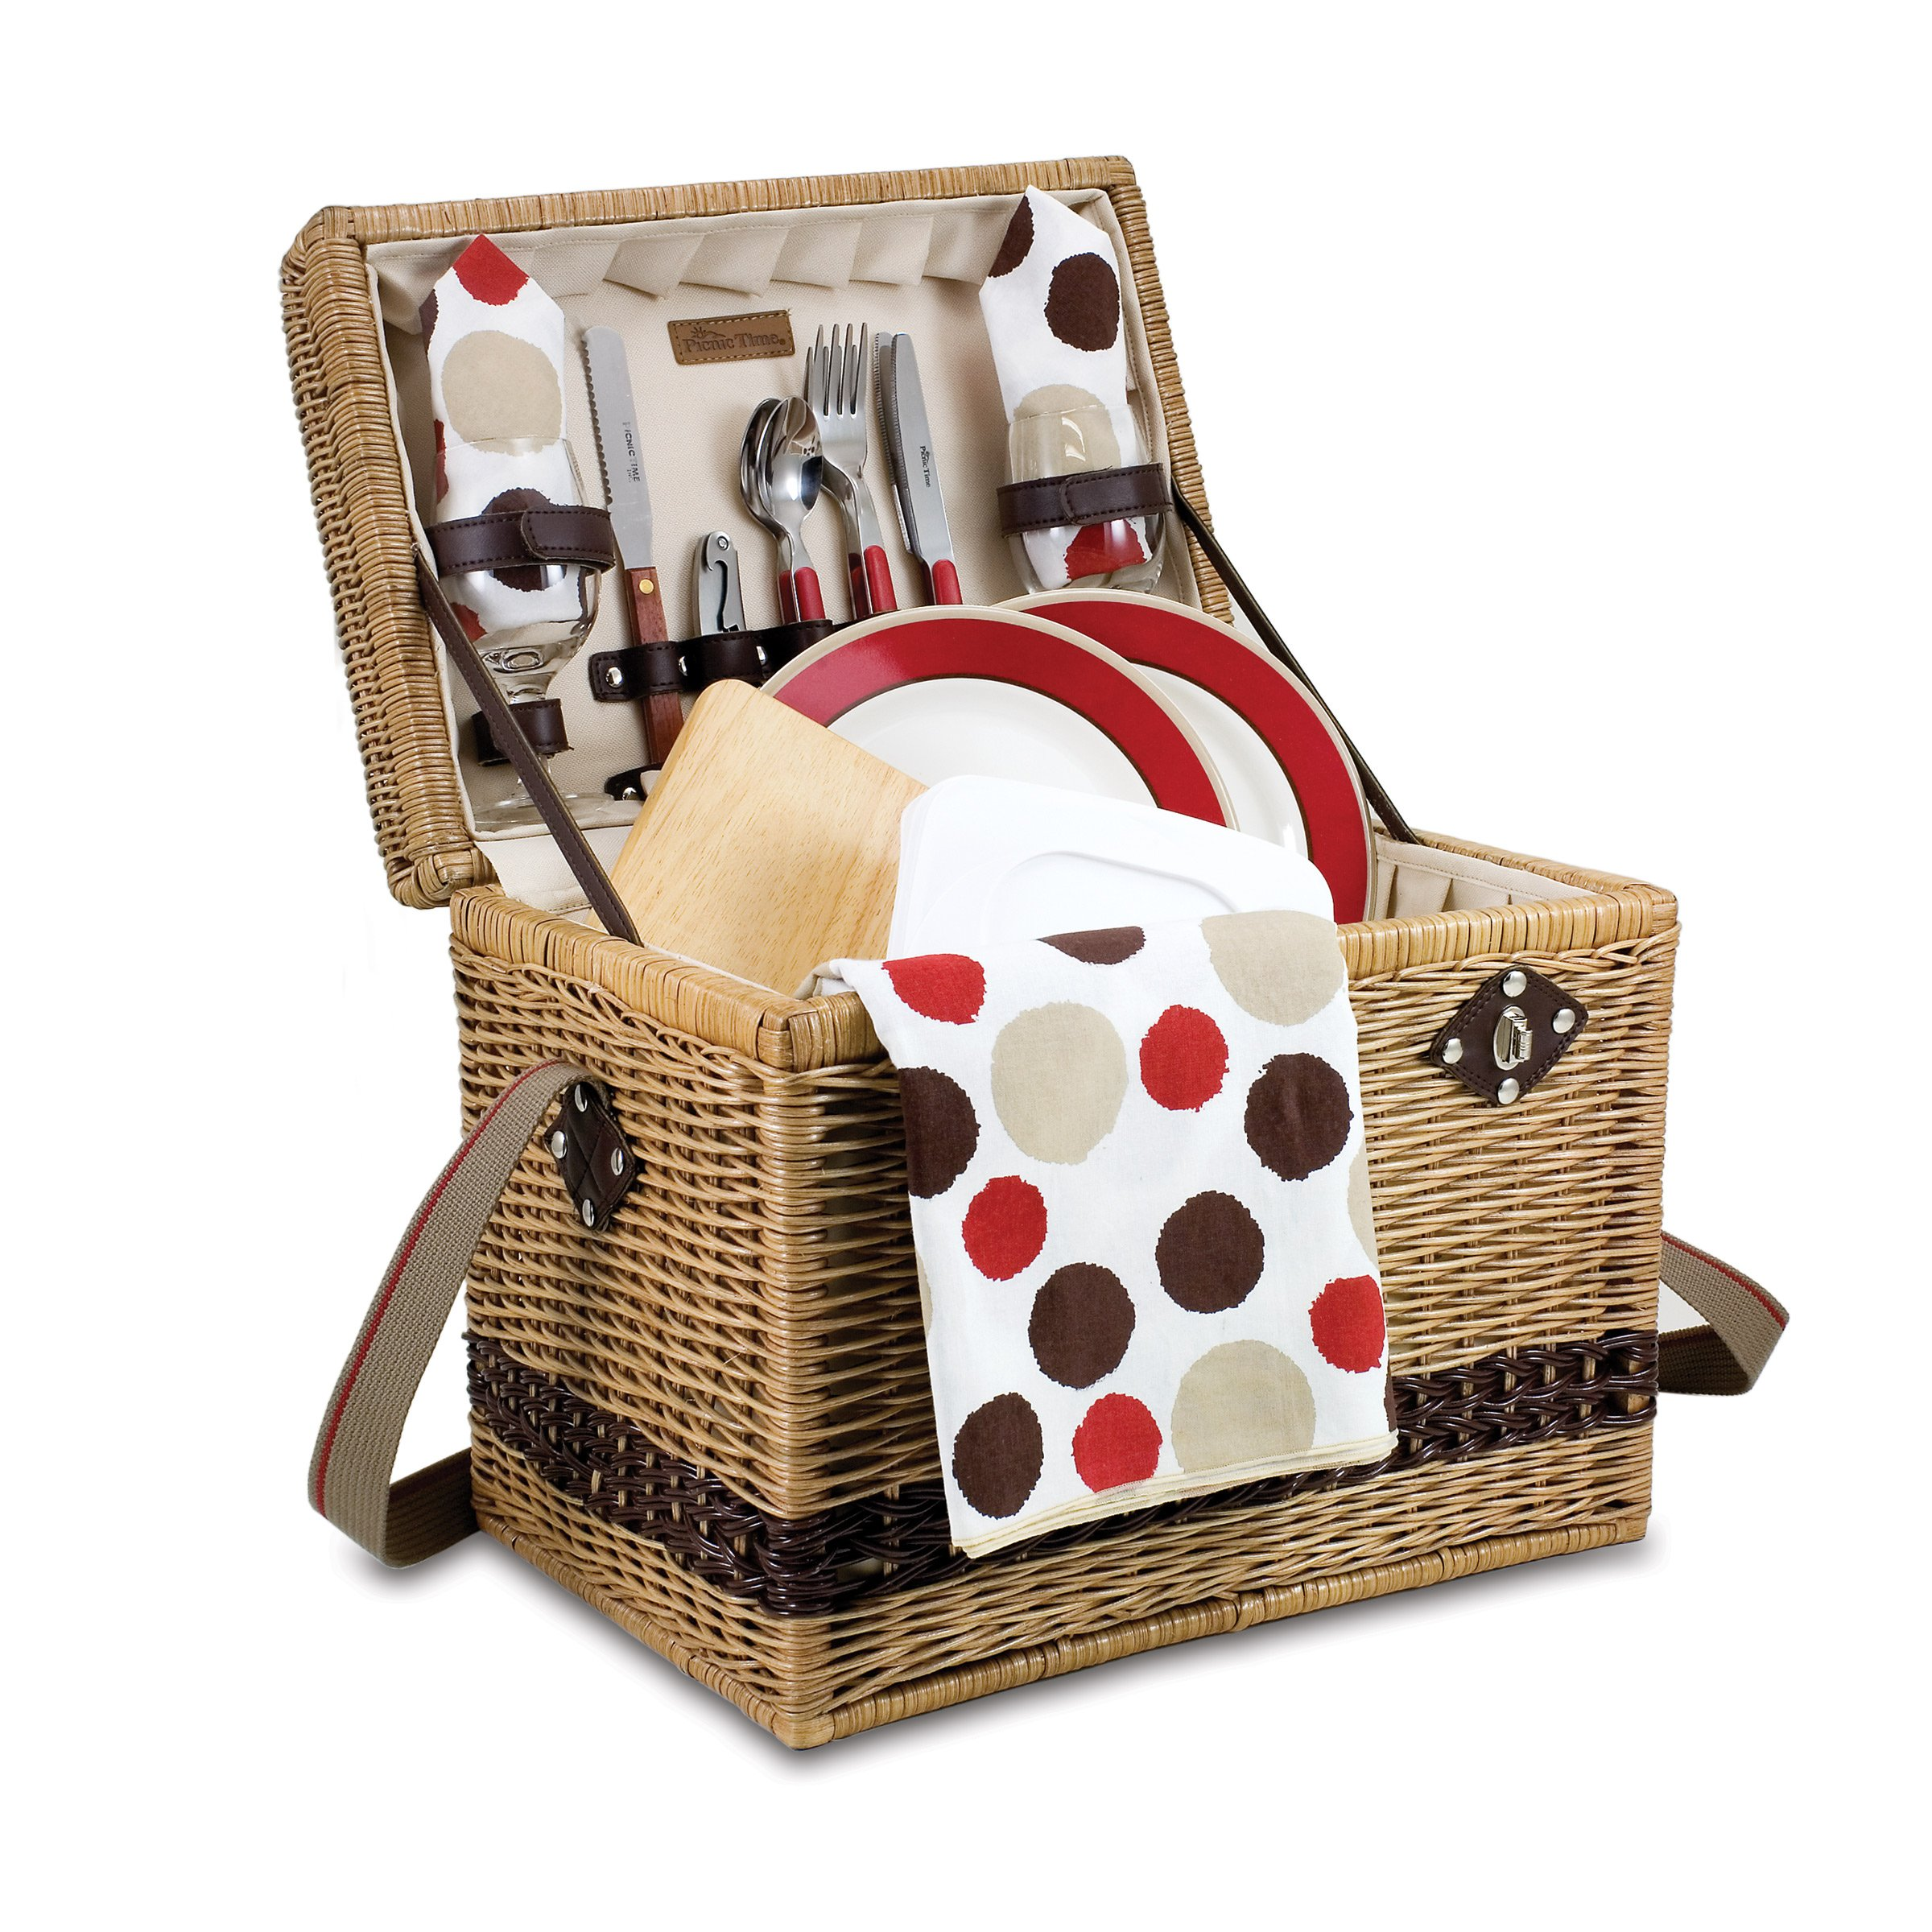 Picnic Time Yellowstone Willow Picnic Basket with Deluxe Service for 2, Moka Collection by PICNIC TIME